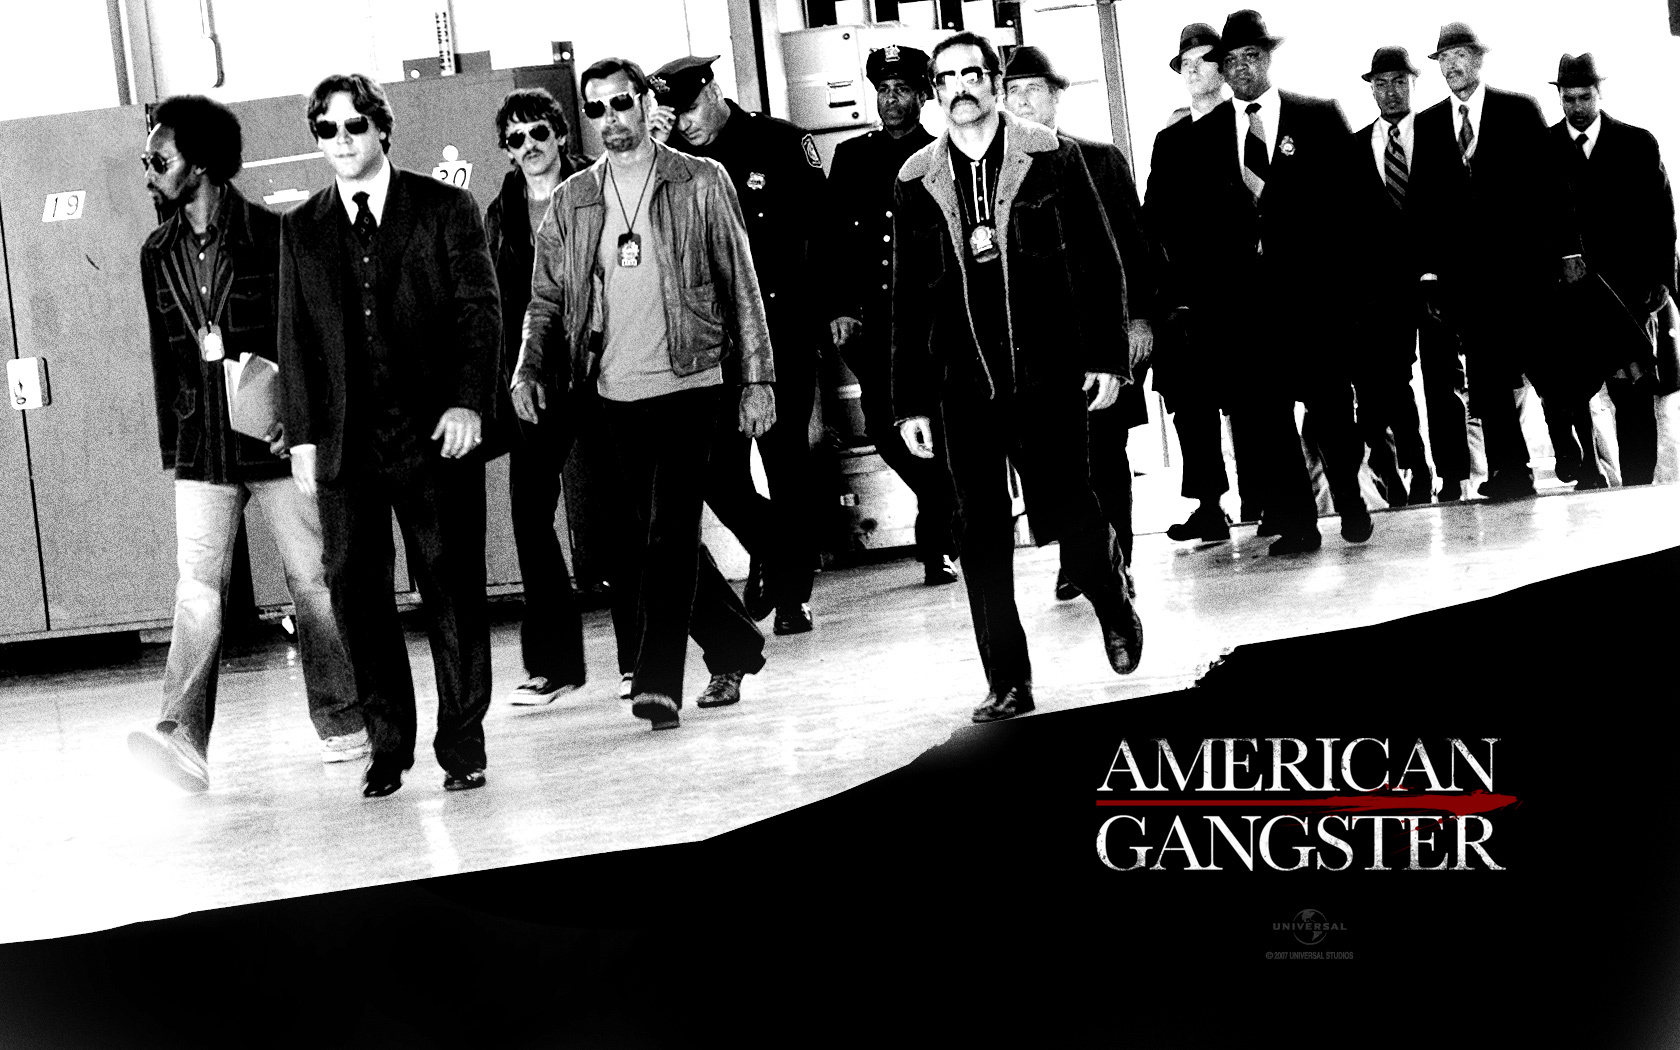 American gangster HD Wallpaper